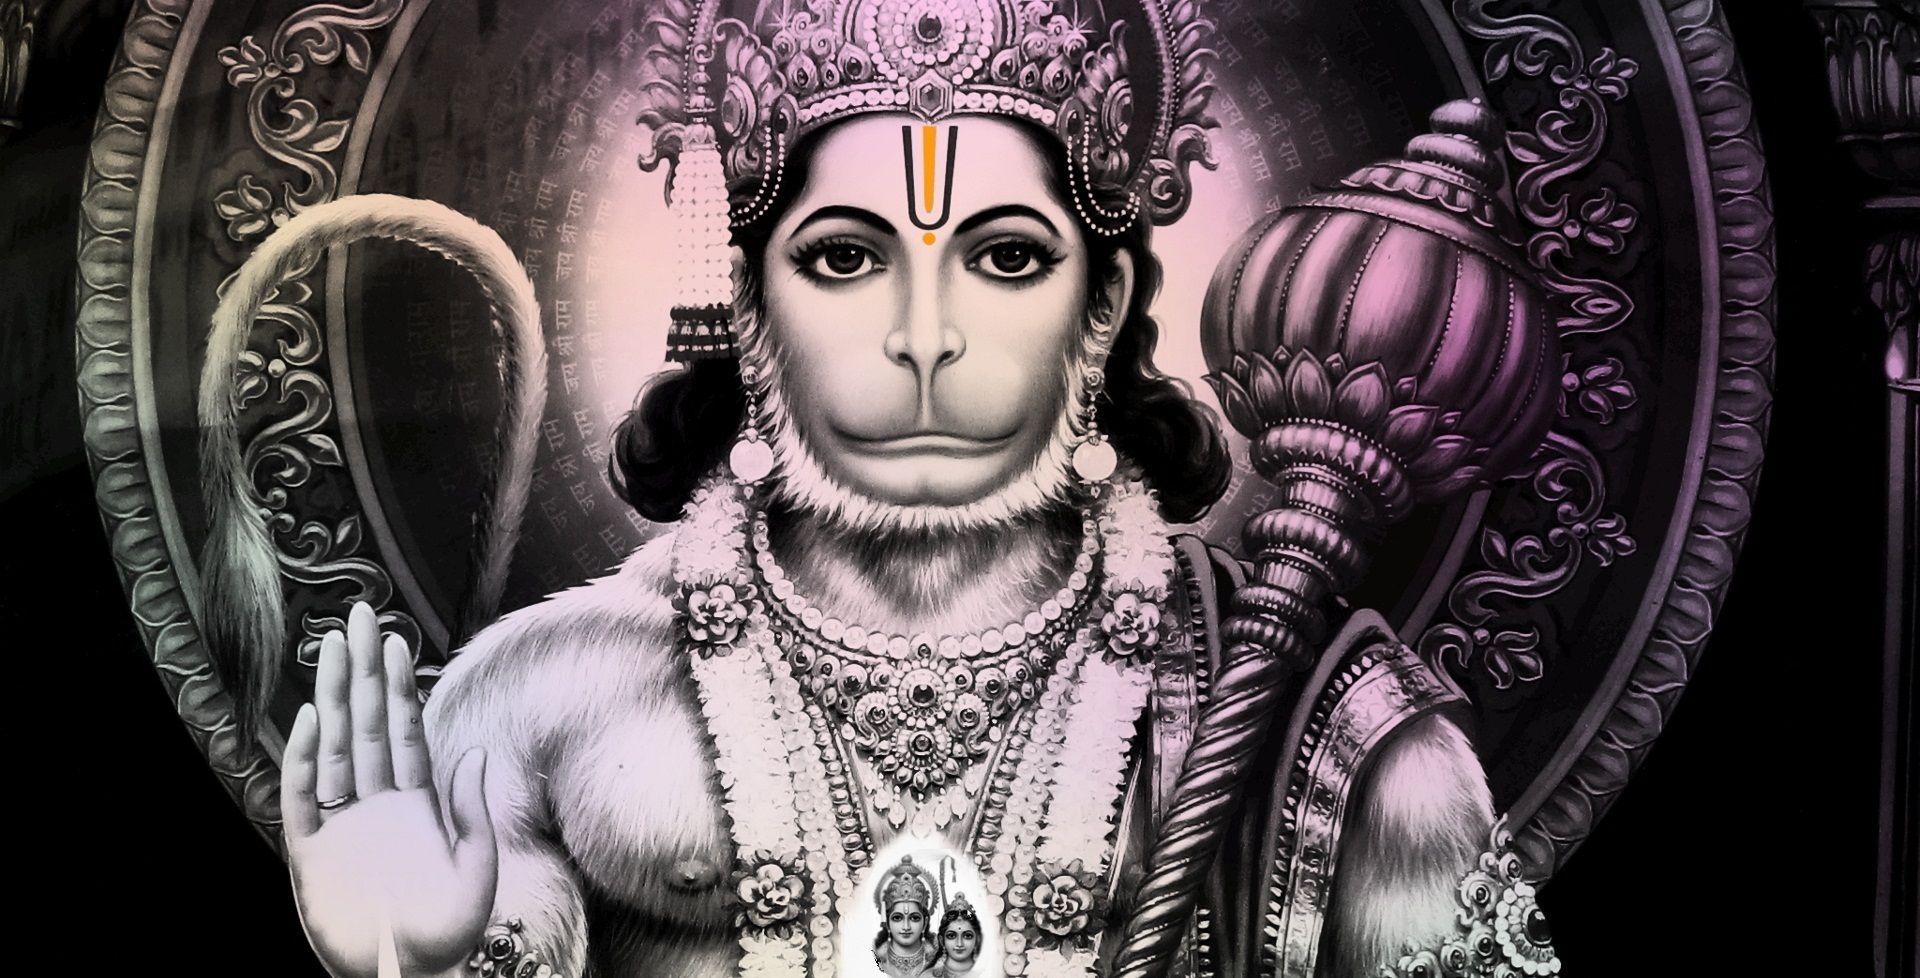 Jai Hanuman Hd Wallpaper Hanuman Images Of Hindu God Lord Hanuman 1920x978 Download Hd Wallpaper Wallpapertip